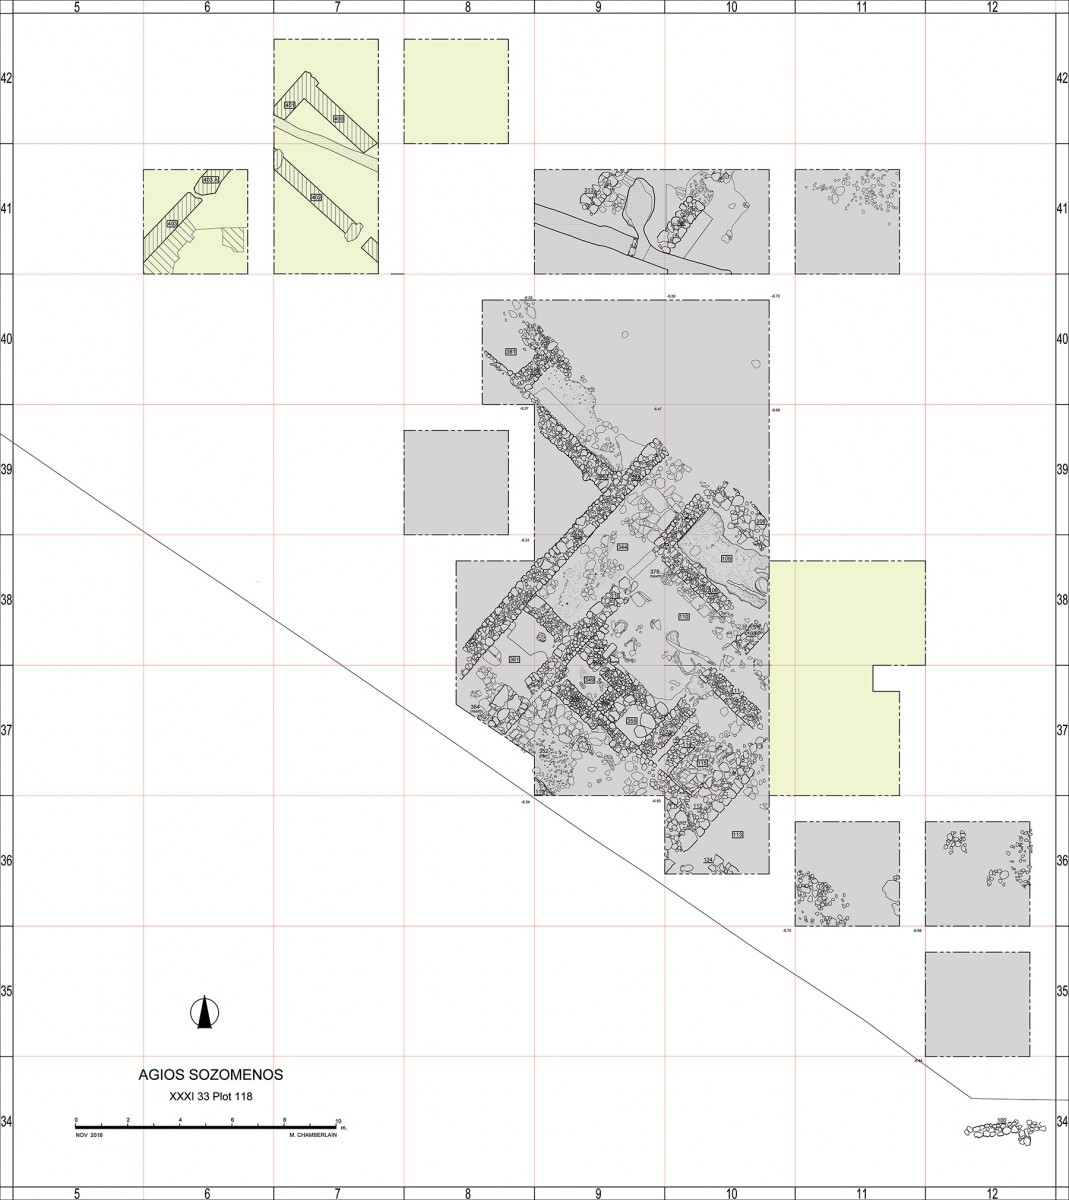 Plan of the Agios Sozomenos site. Photo credit: Department of Antiquities Cyprus